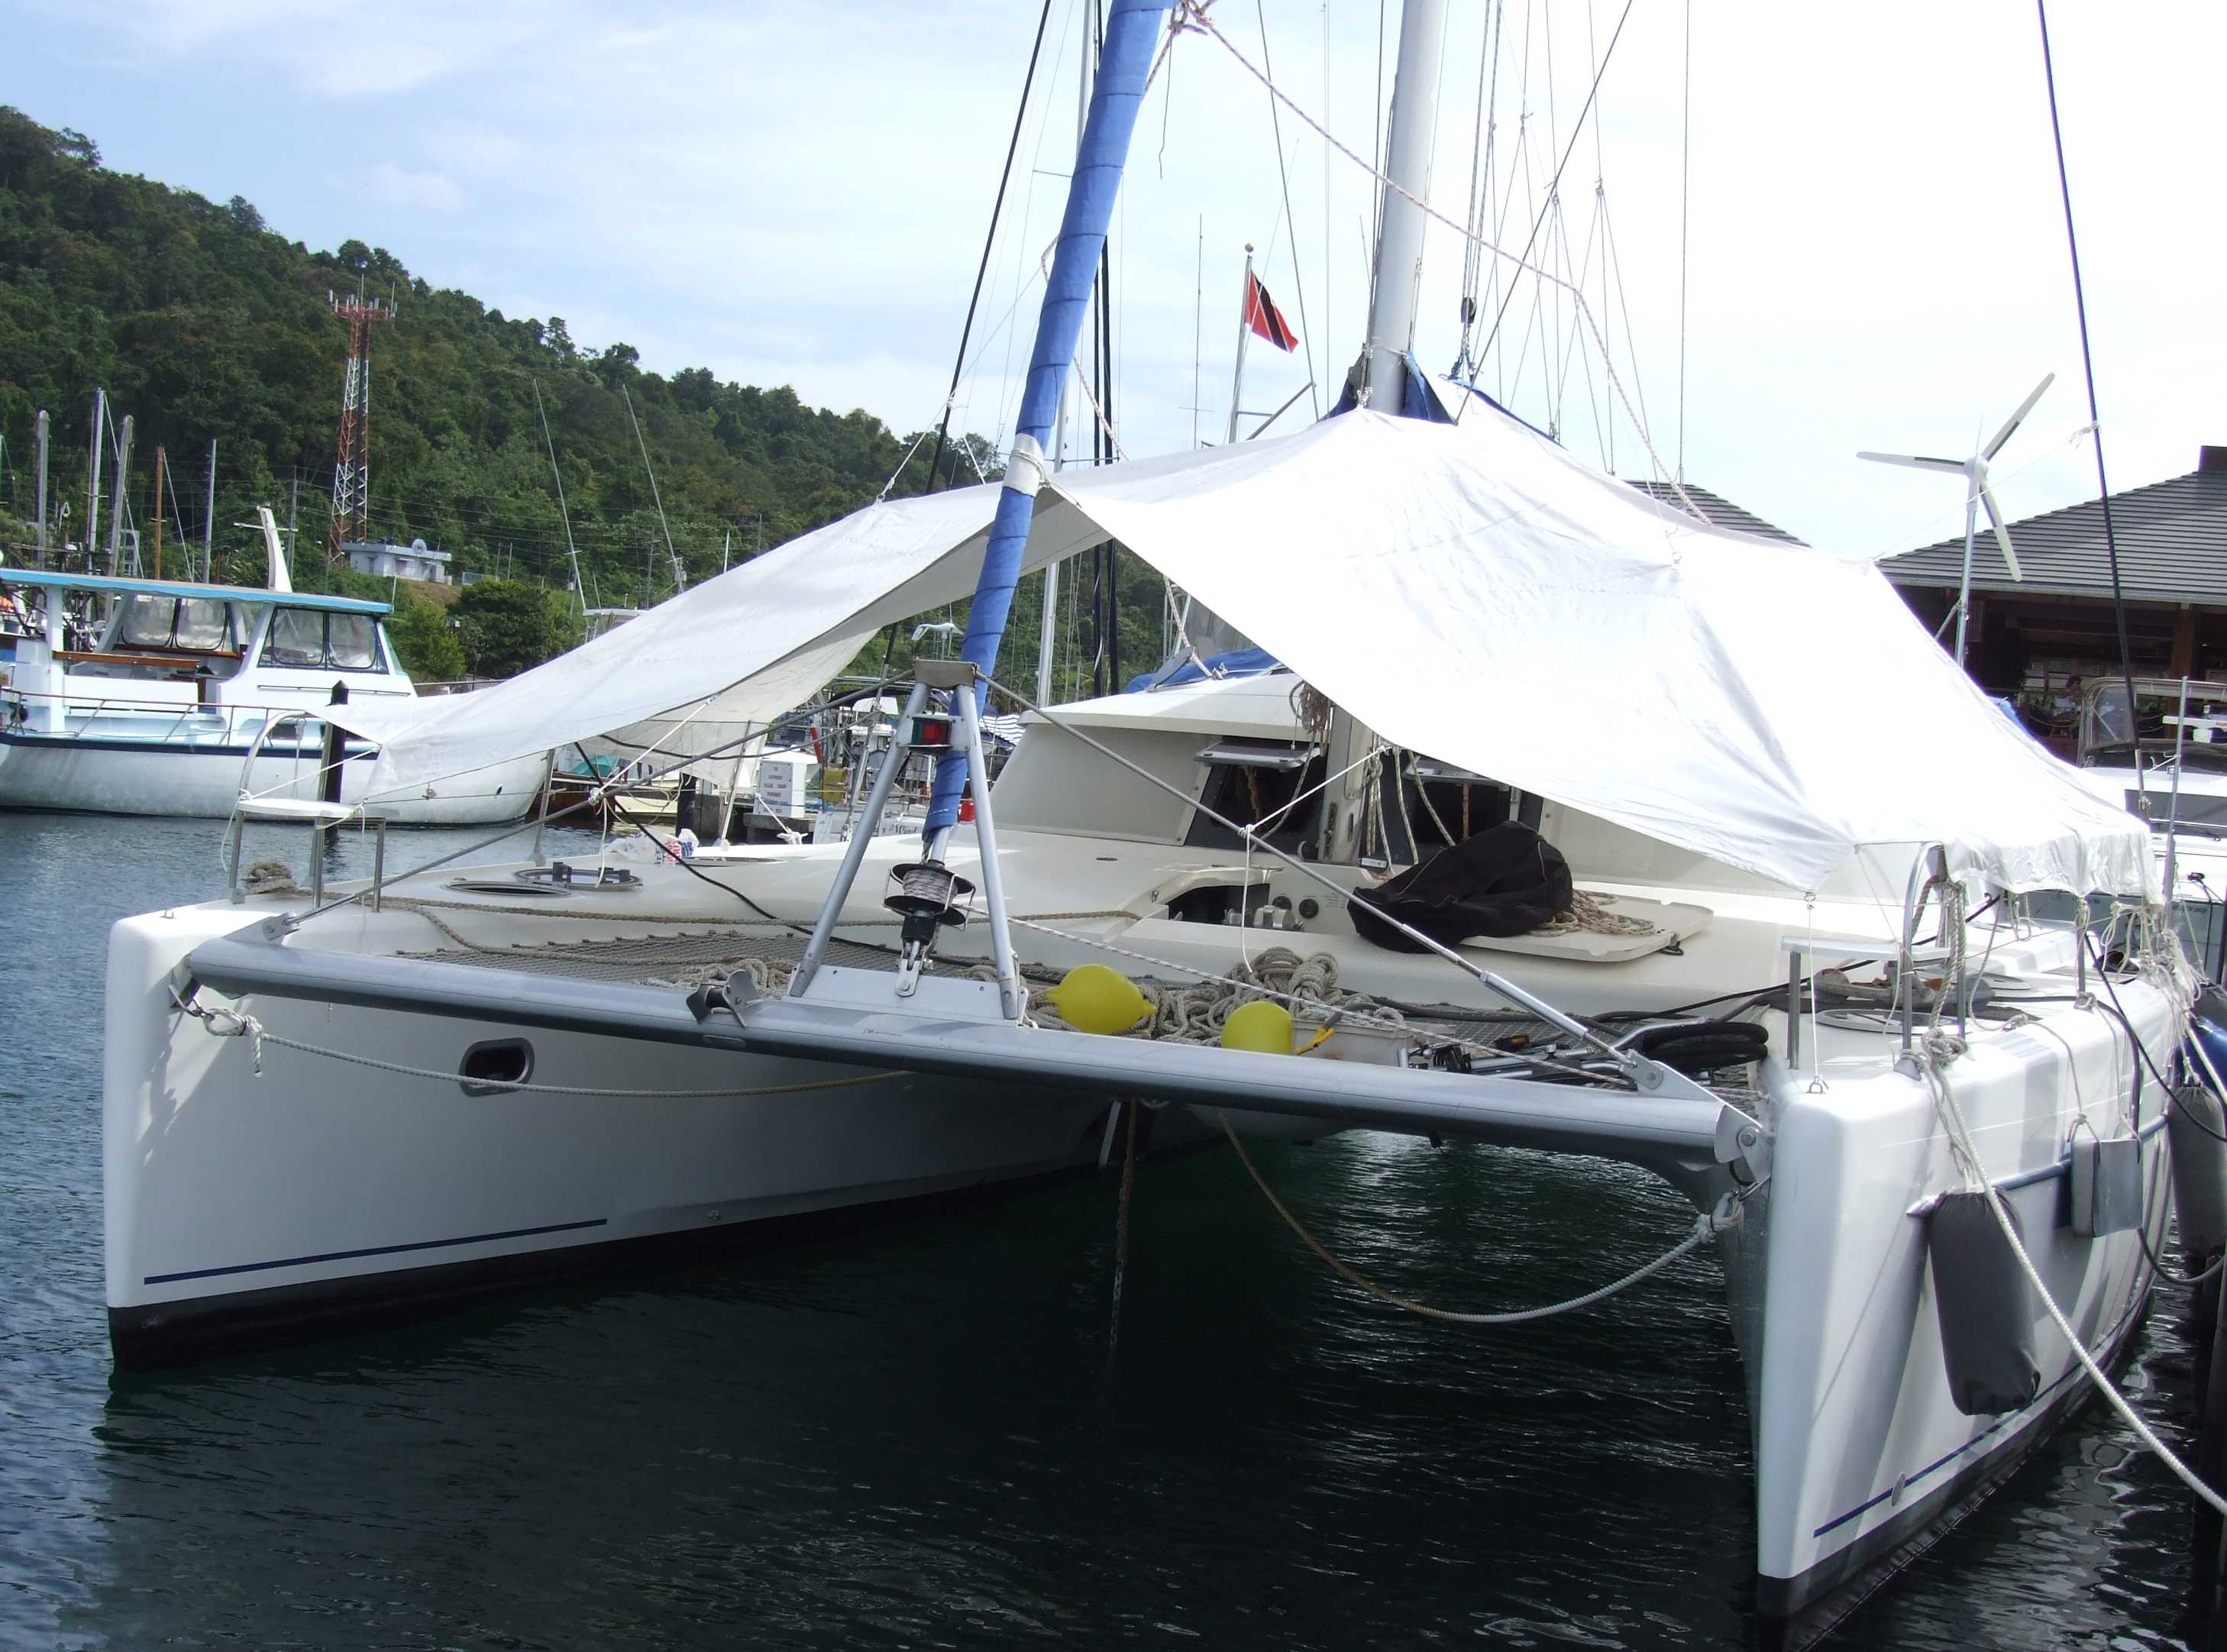 Preowned Sail Catamarans for Sale 2000 Belize 43 Boat Highlights